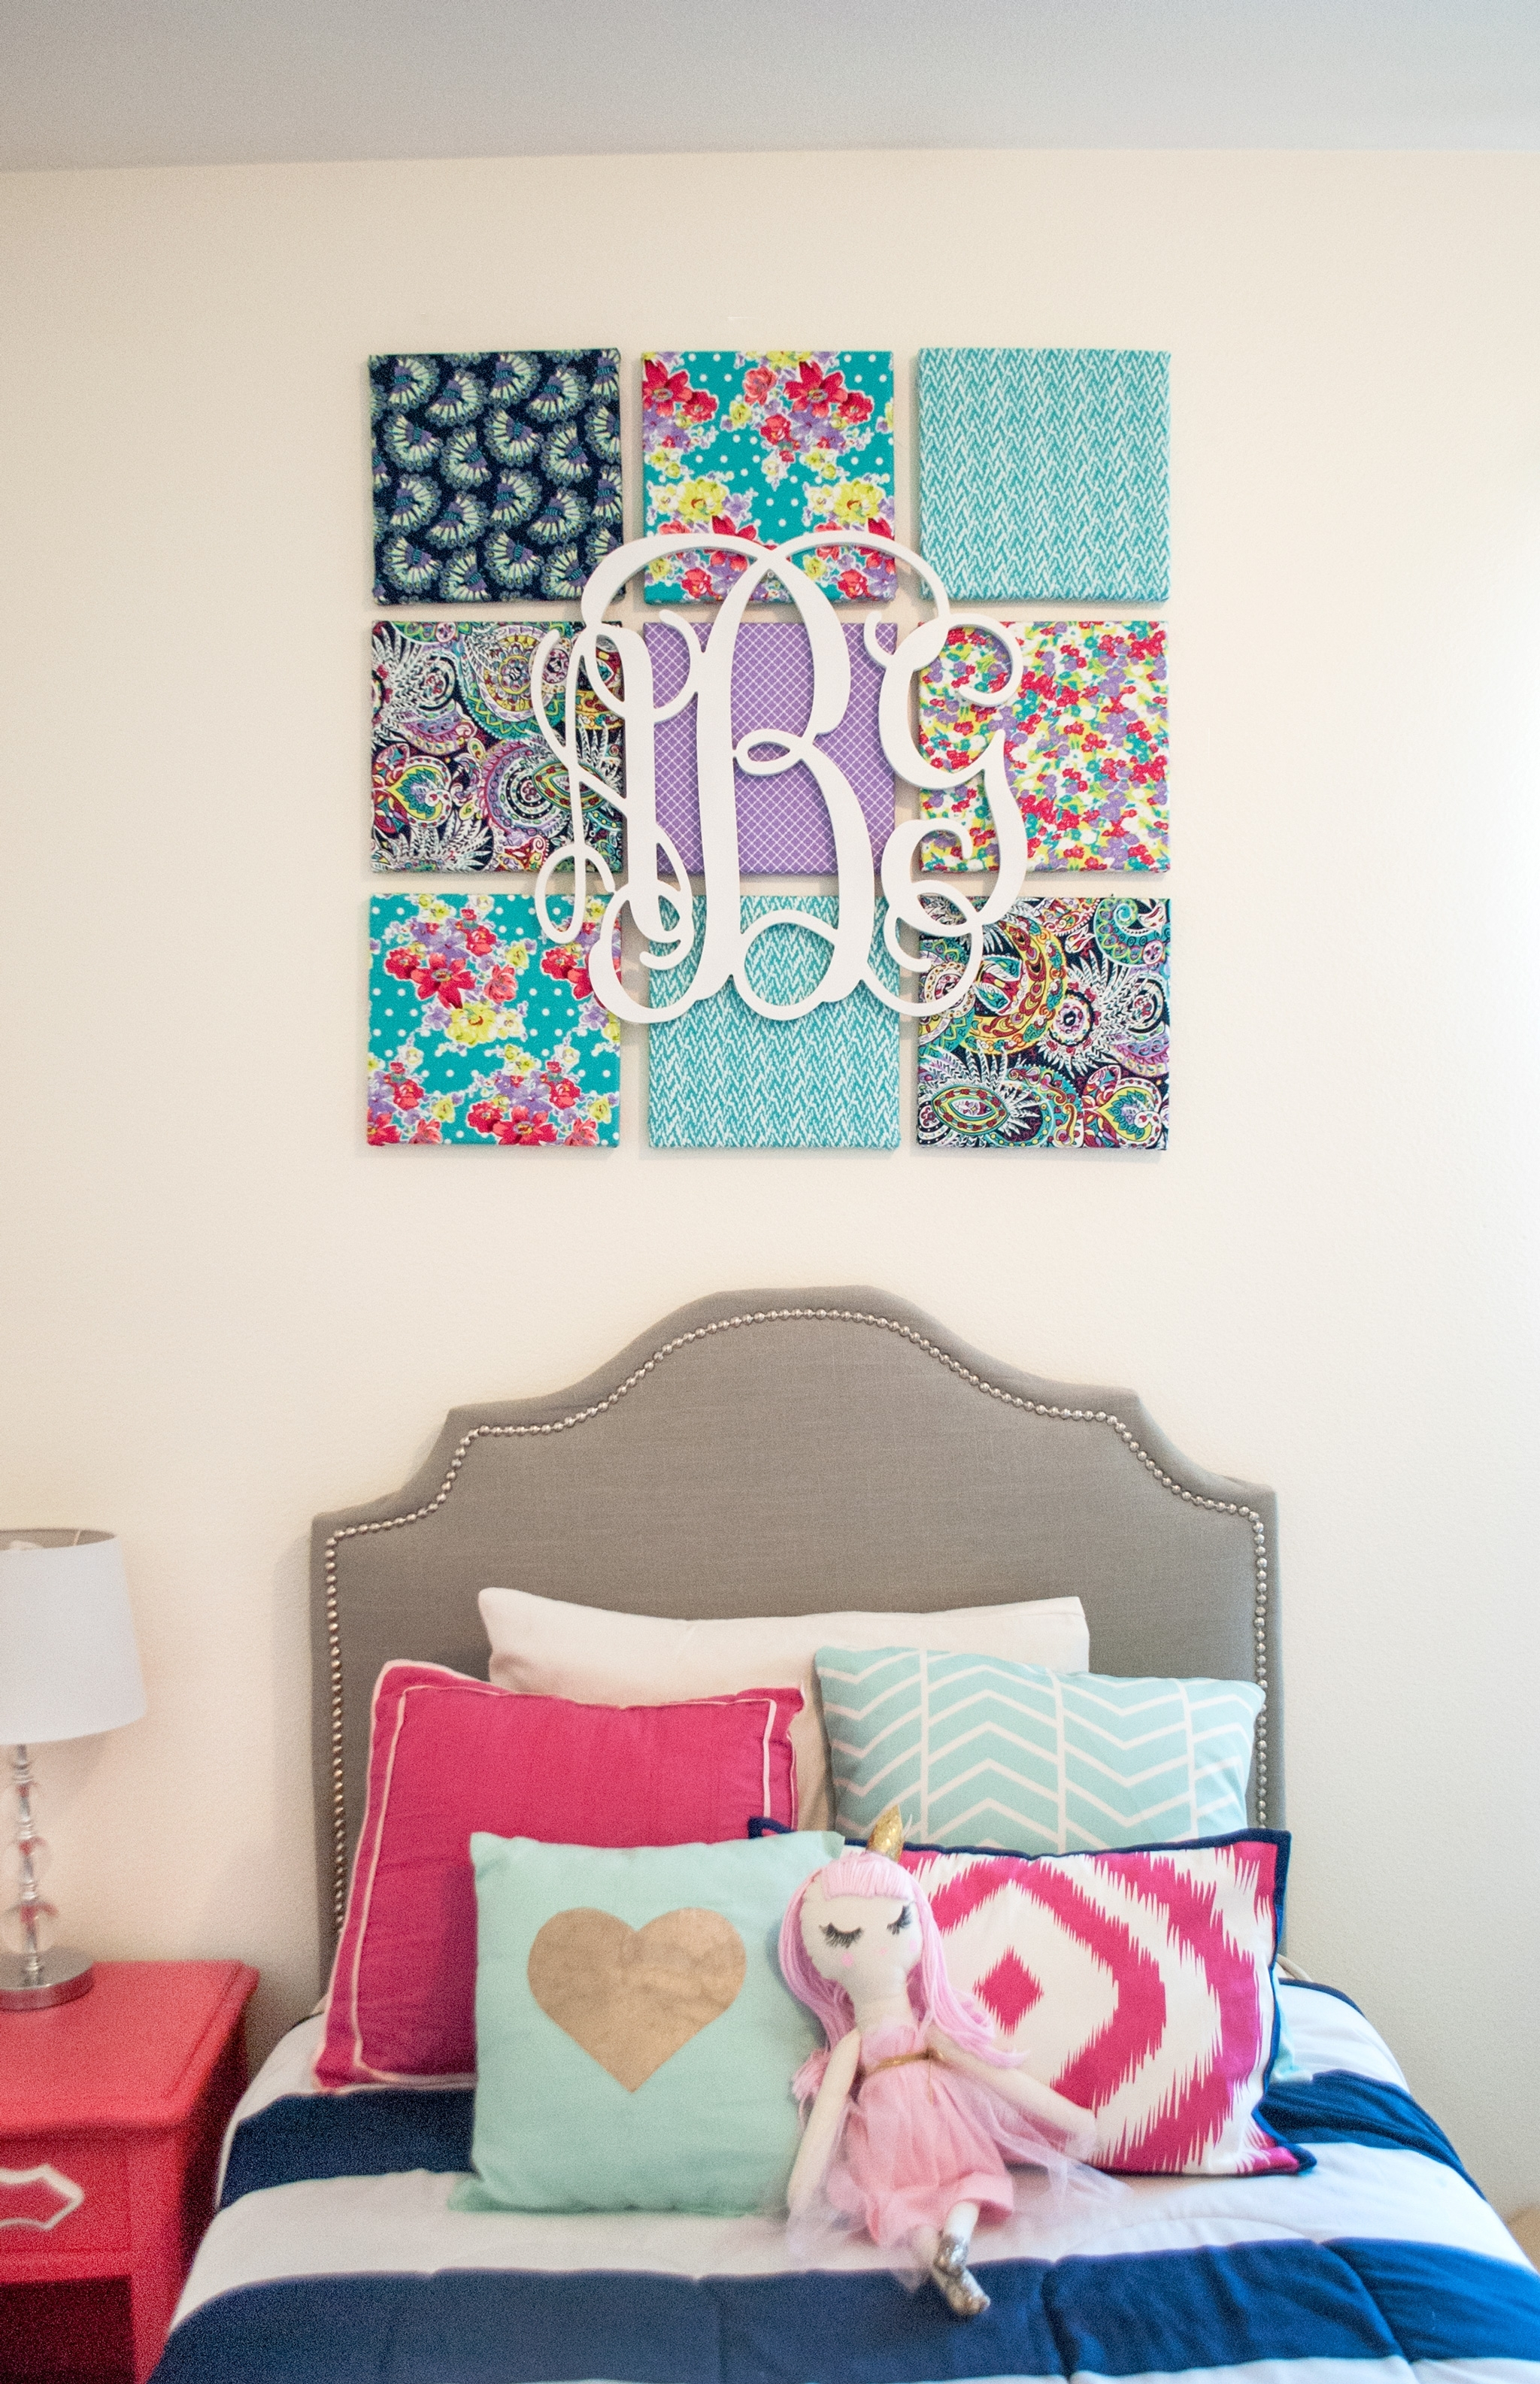 Surprising Wall Art Ideas Do It Yourself 19 Eye Catchy Diy Paper With Regard To Most Popular Diy Wall Art Projects (Gallery 9 of 20)